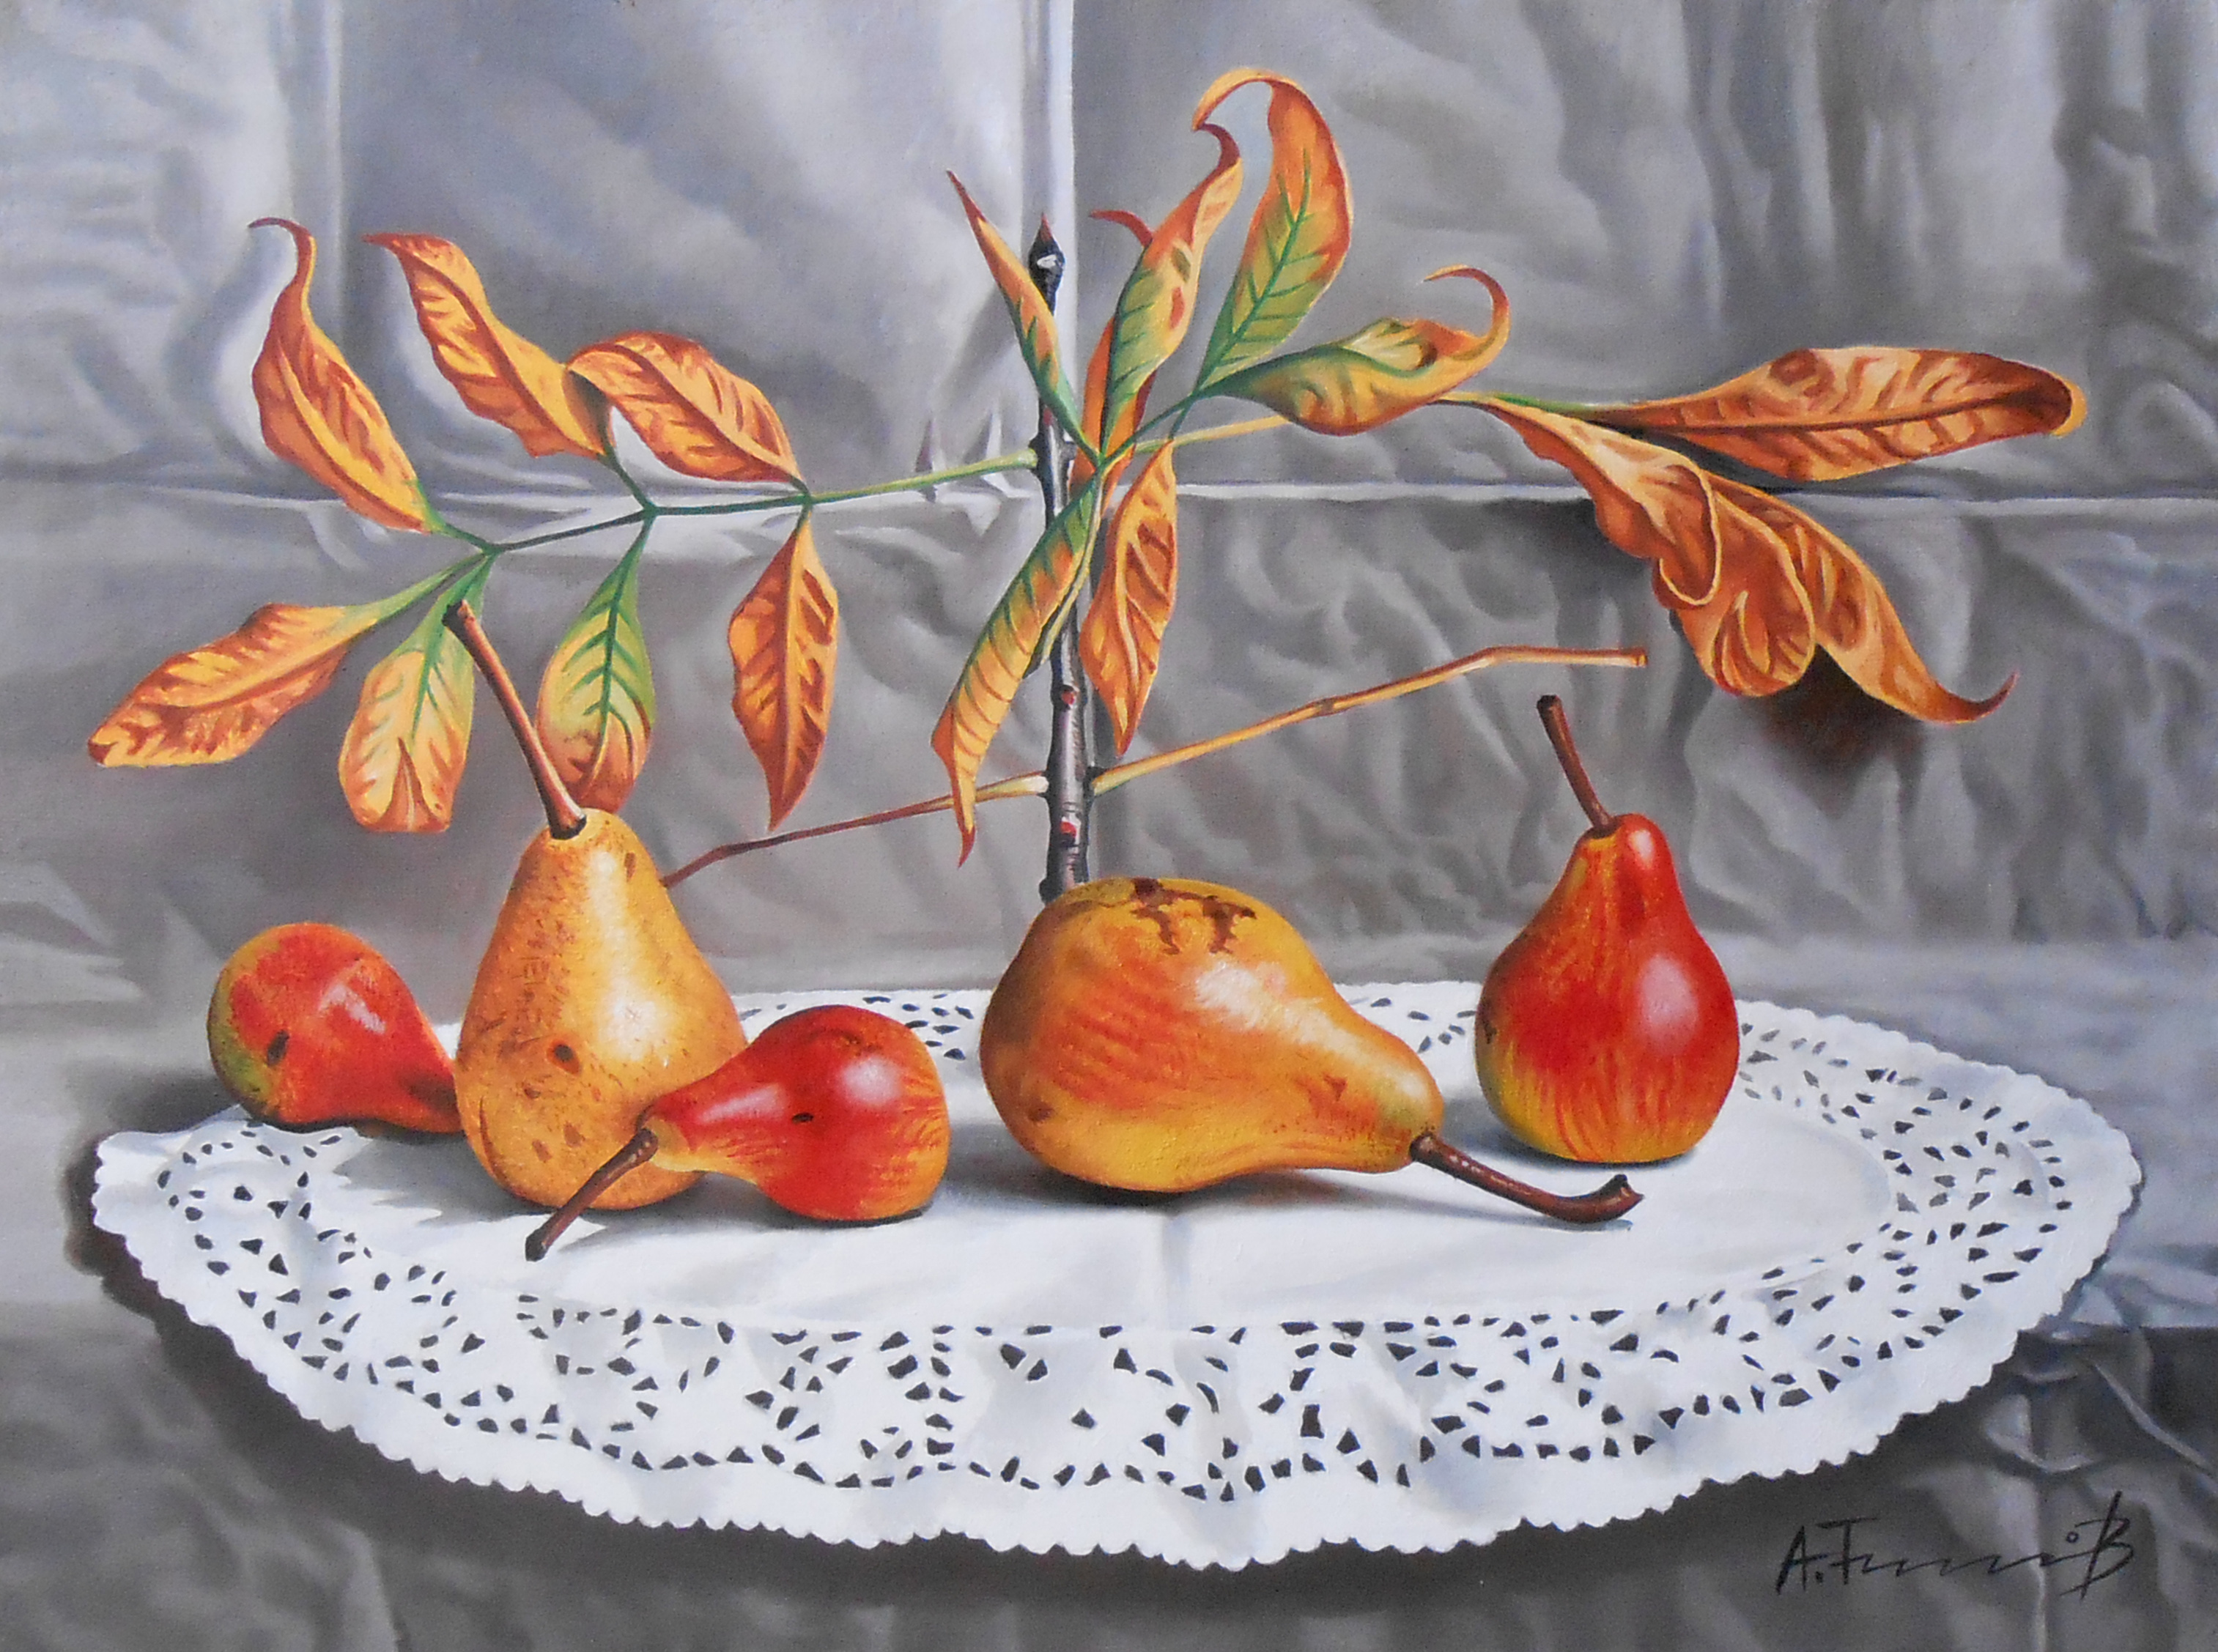 Pears with autumn leaves